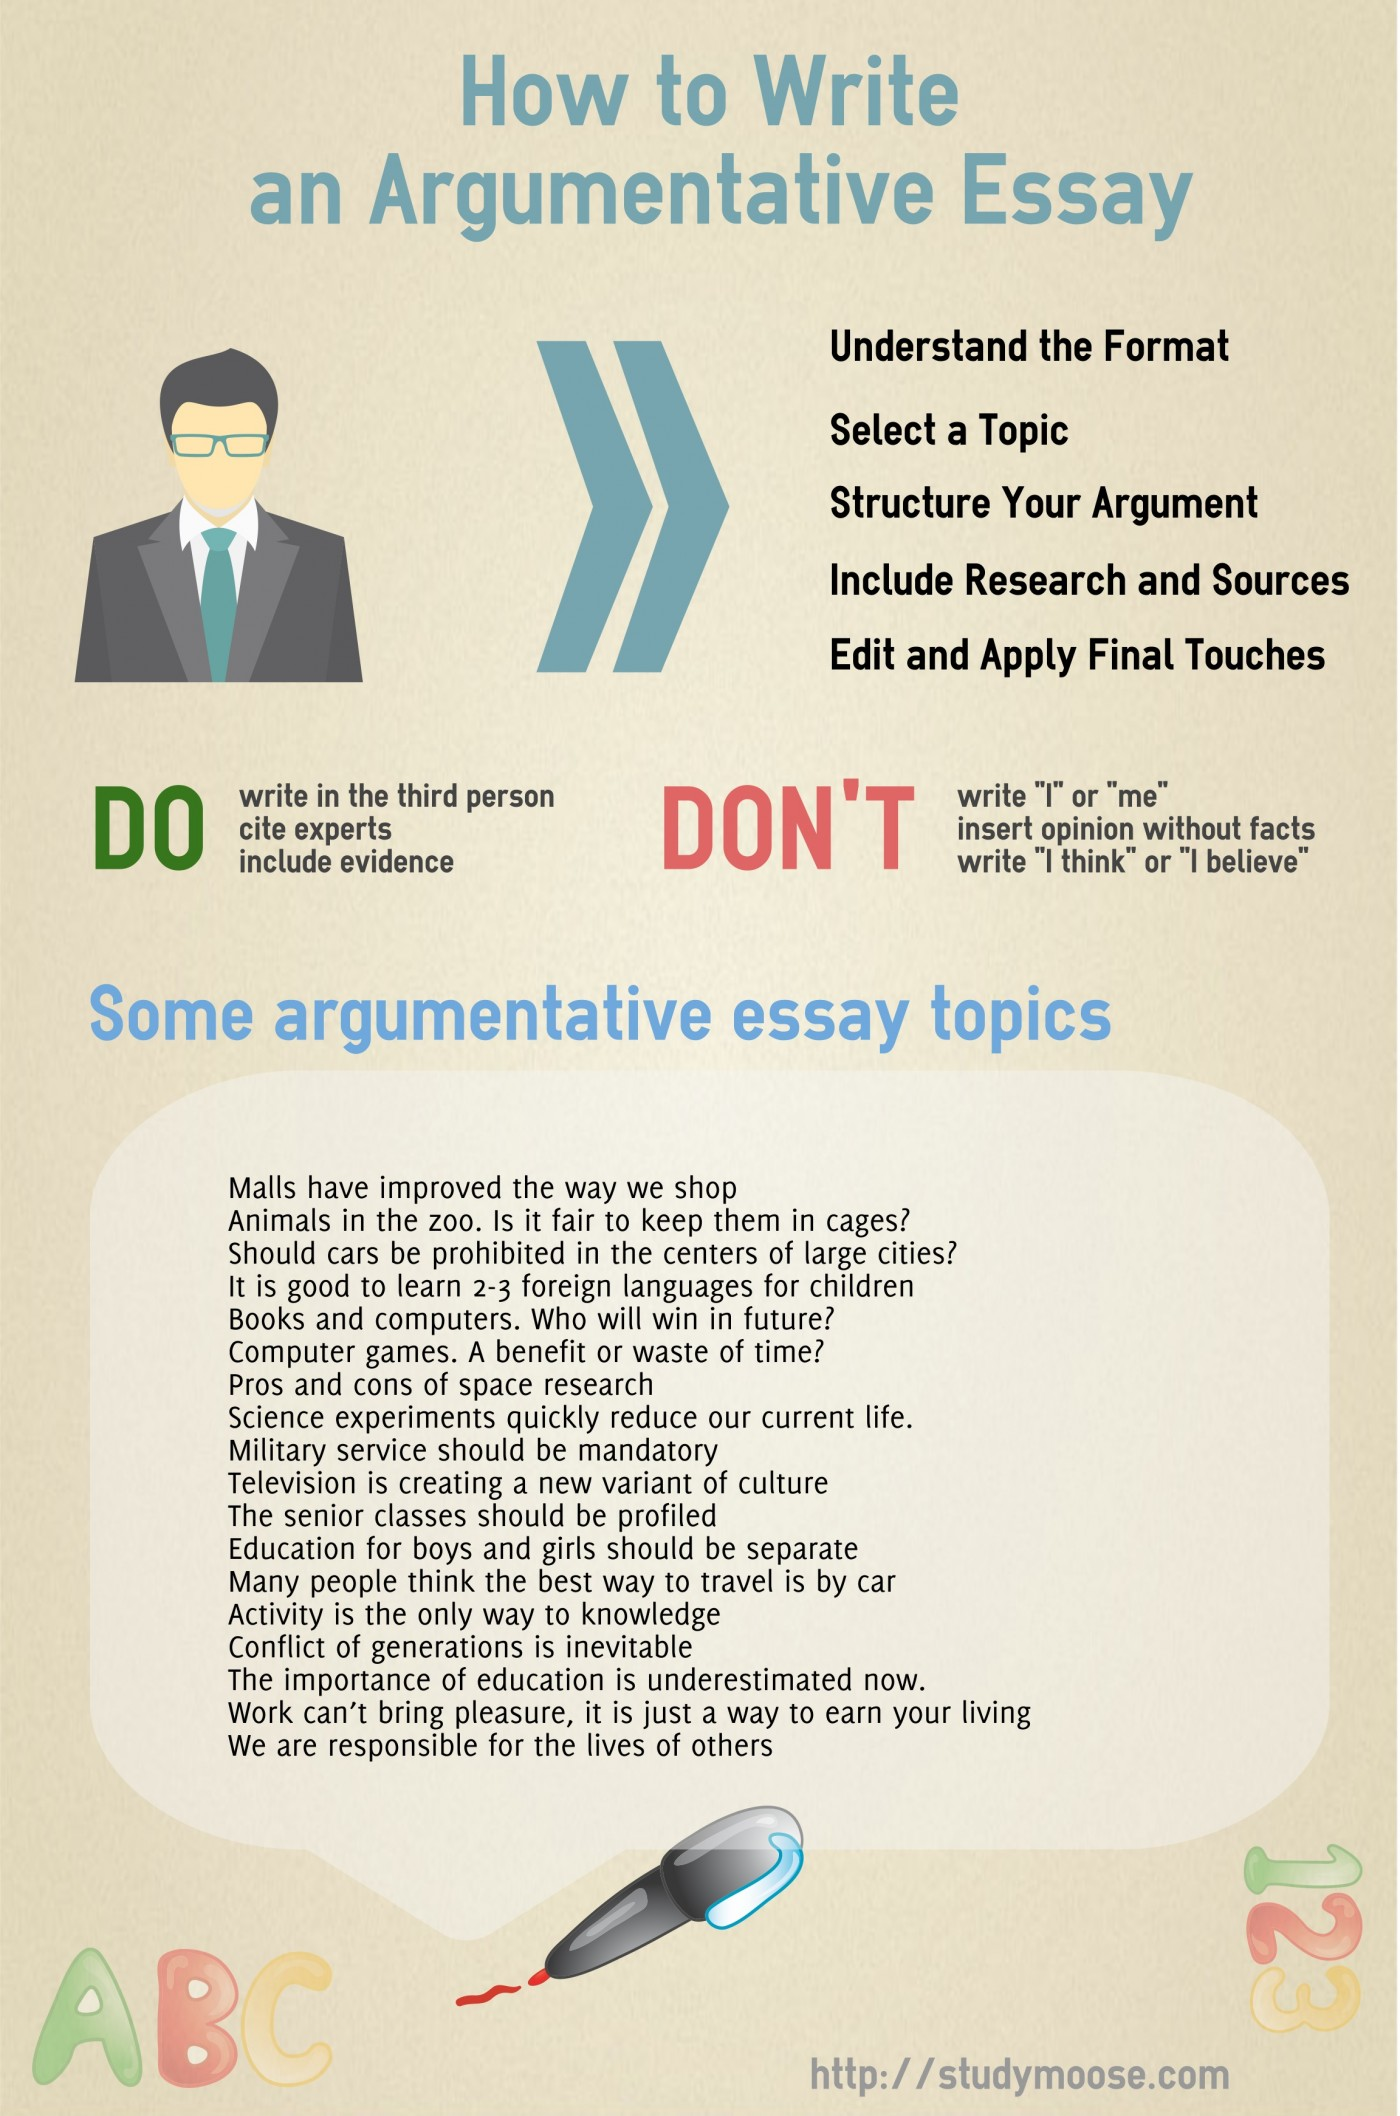 007 Essay Example How To Write An Argumentative Argument Astounding Topics Gre For High Schoolers New York Times 1400